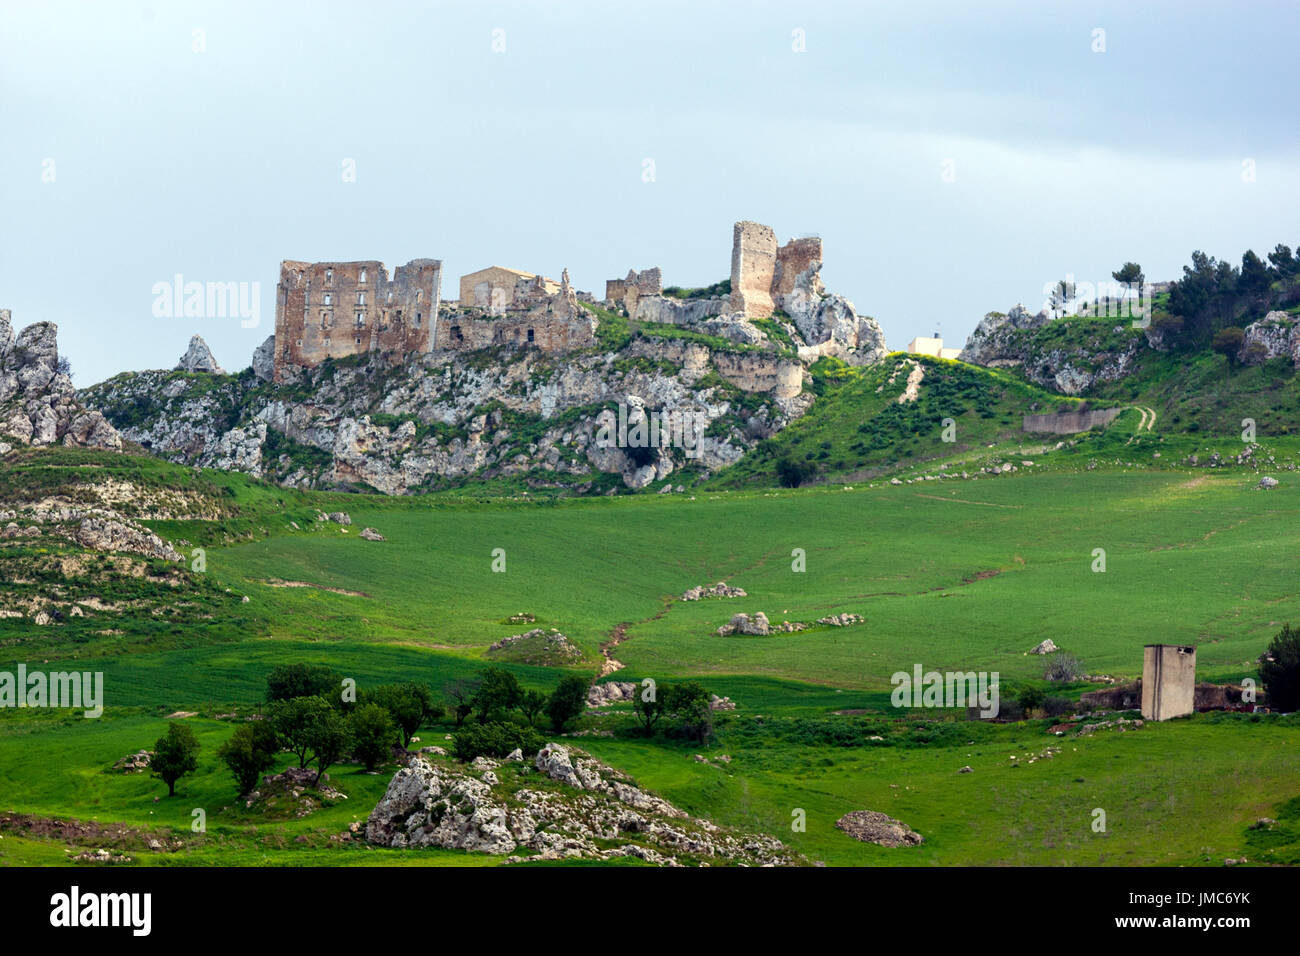 Abandon rural farm in Sicily, Italy - Stock Image